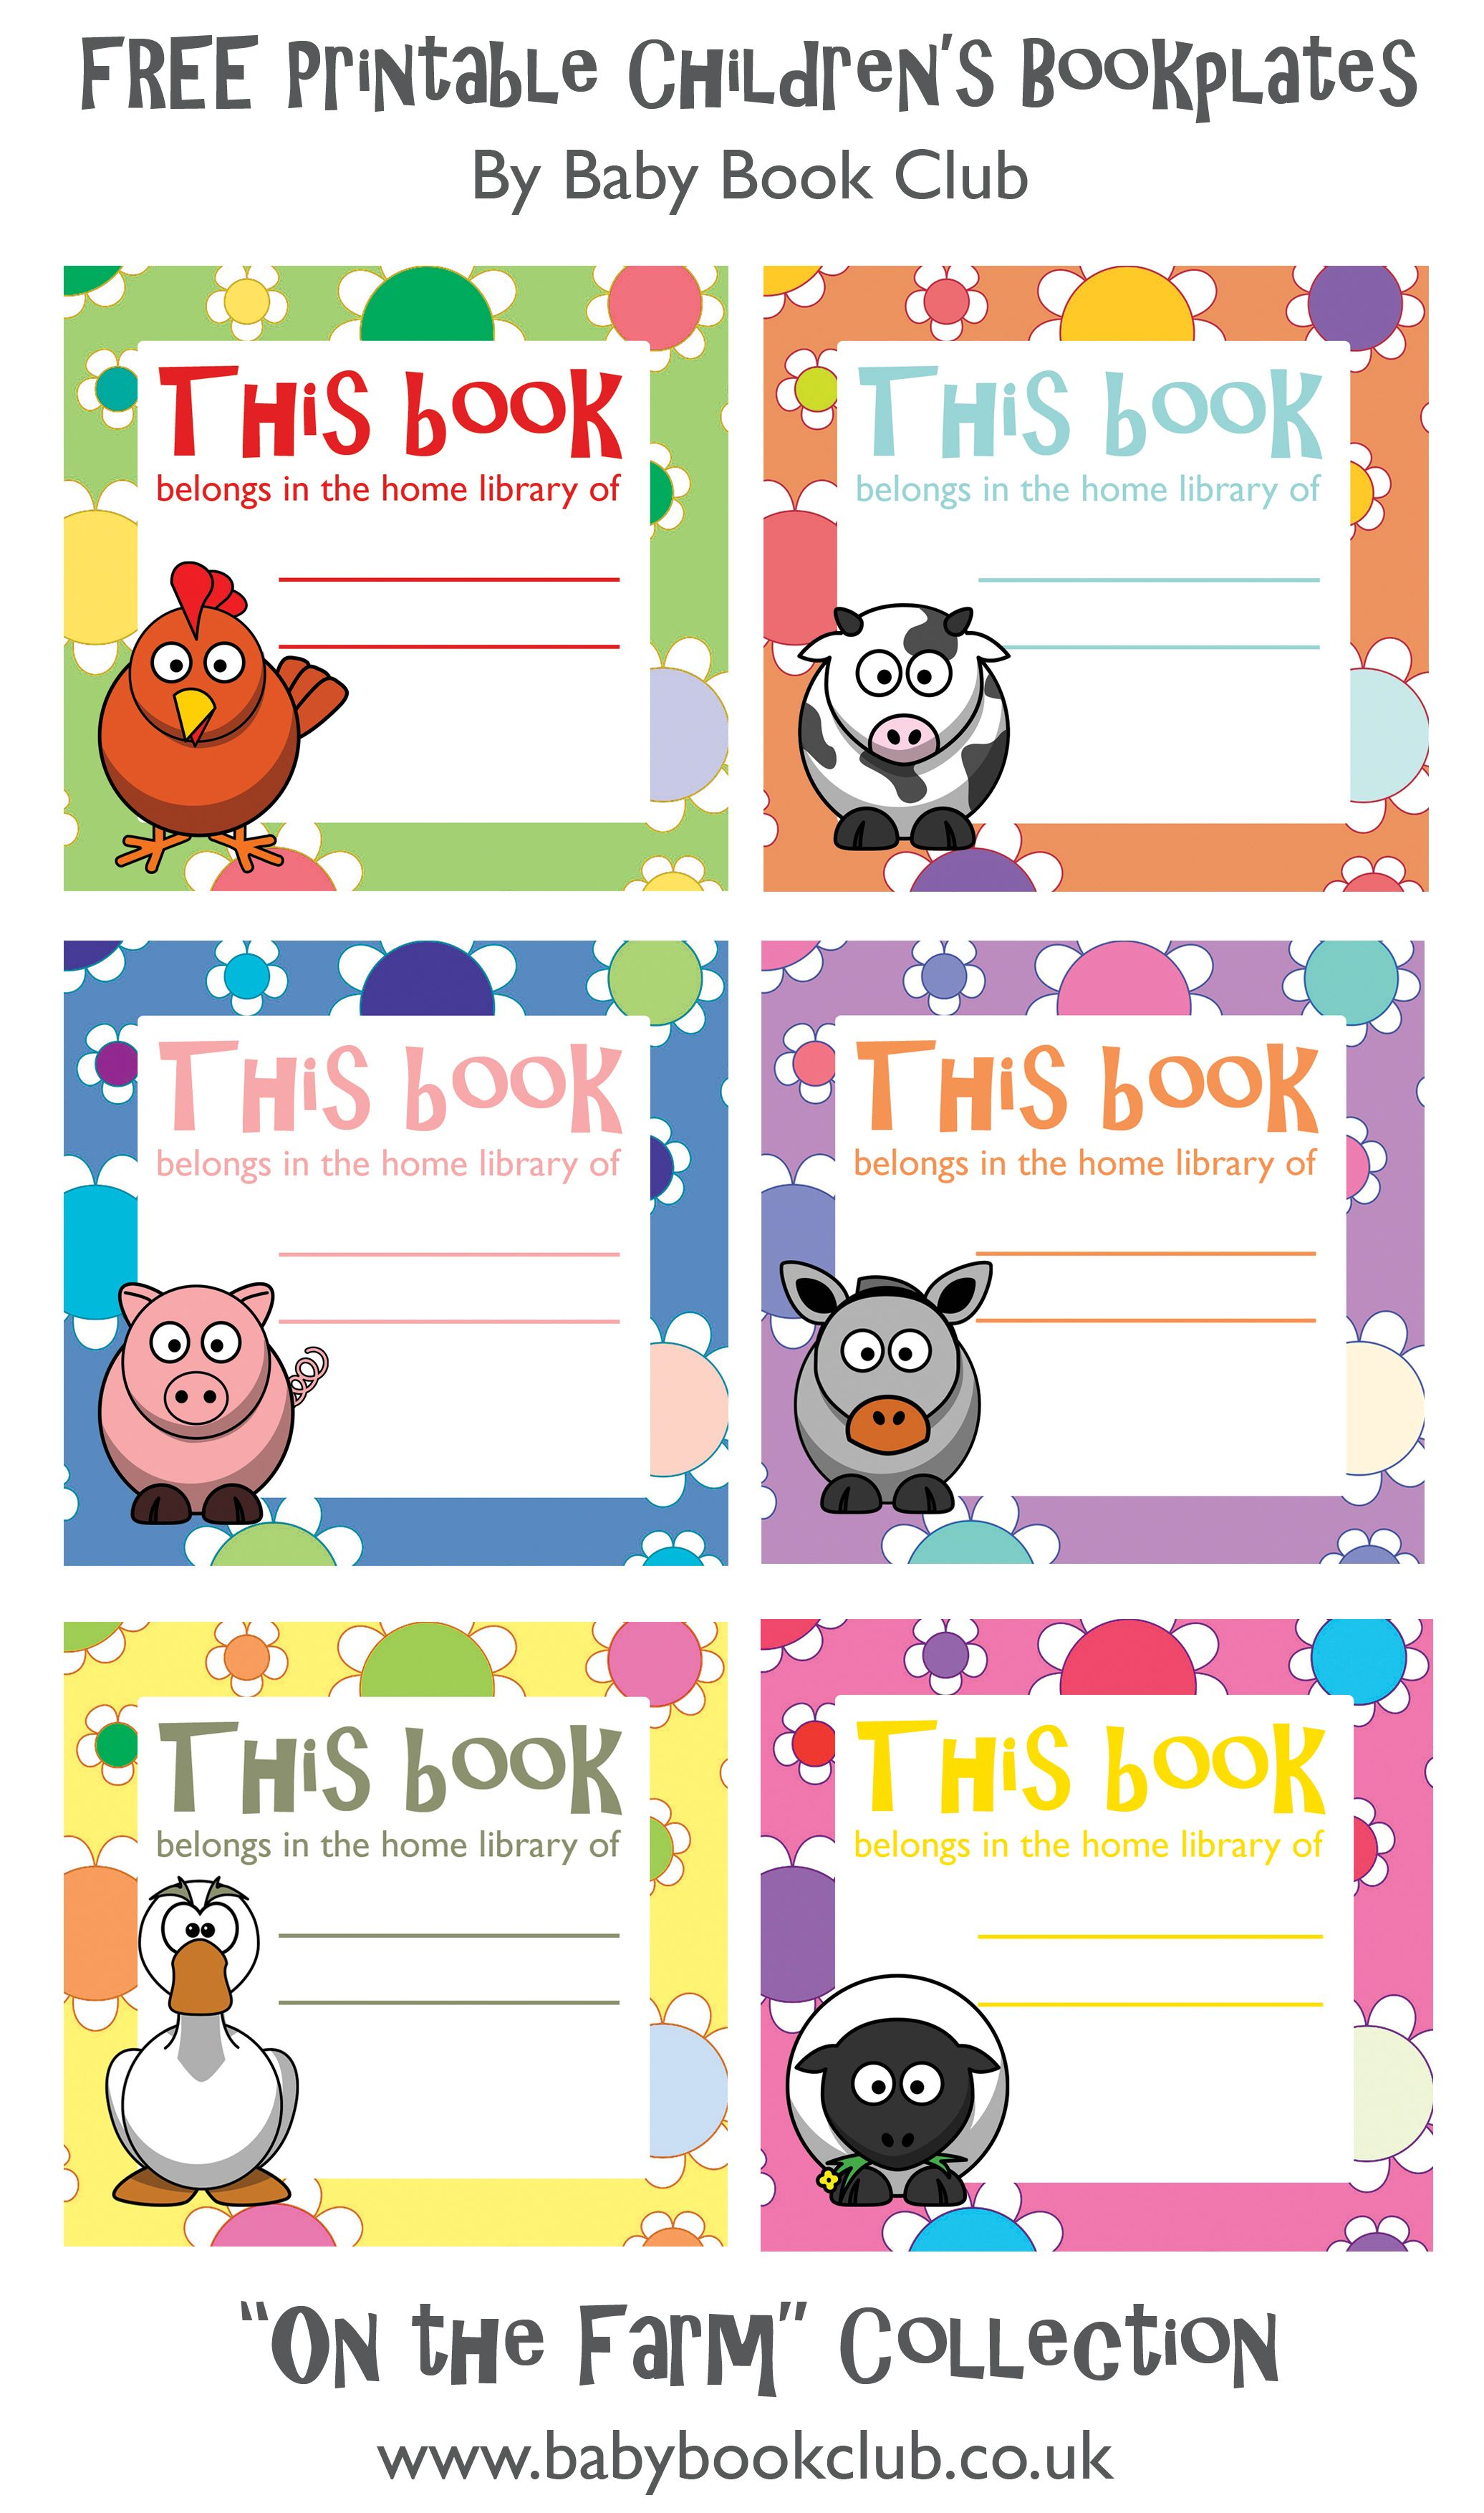 free printable childrens book plates | baby book club | free